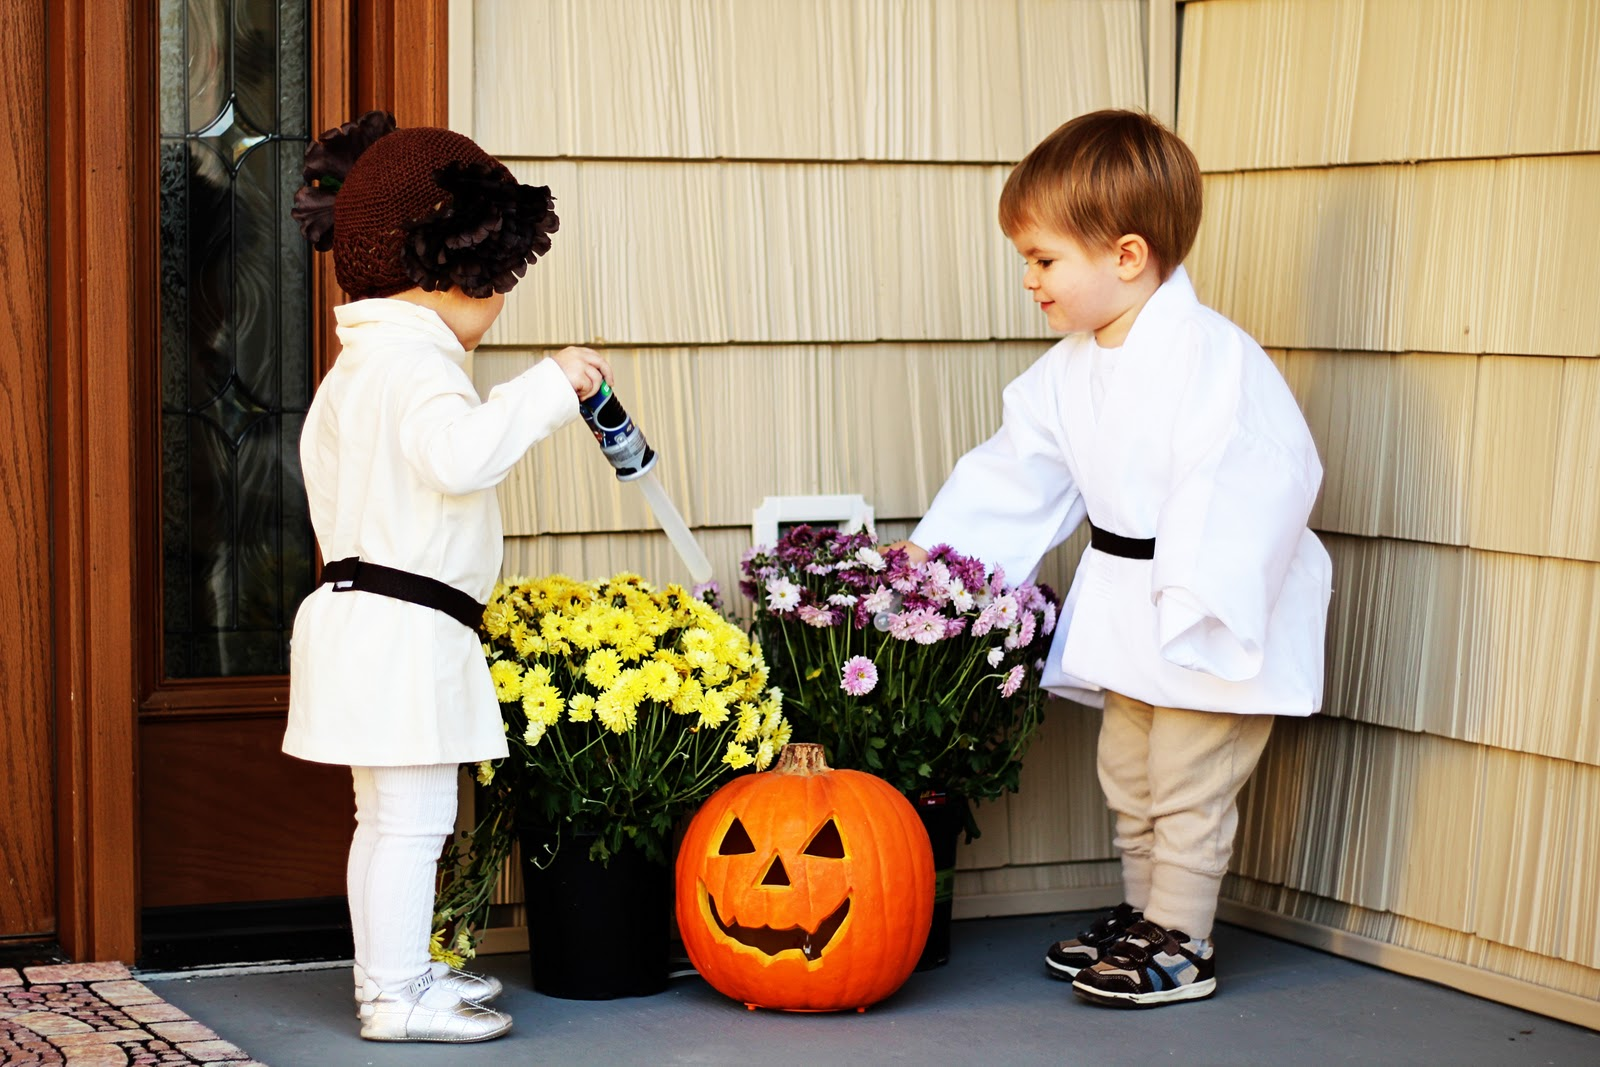 Princess Leia and Luke Skywalker cute halloween costumes for baby twins